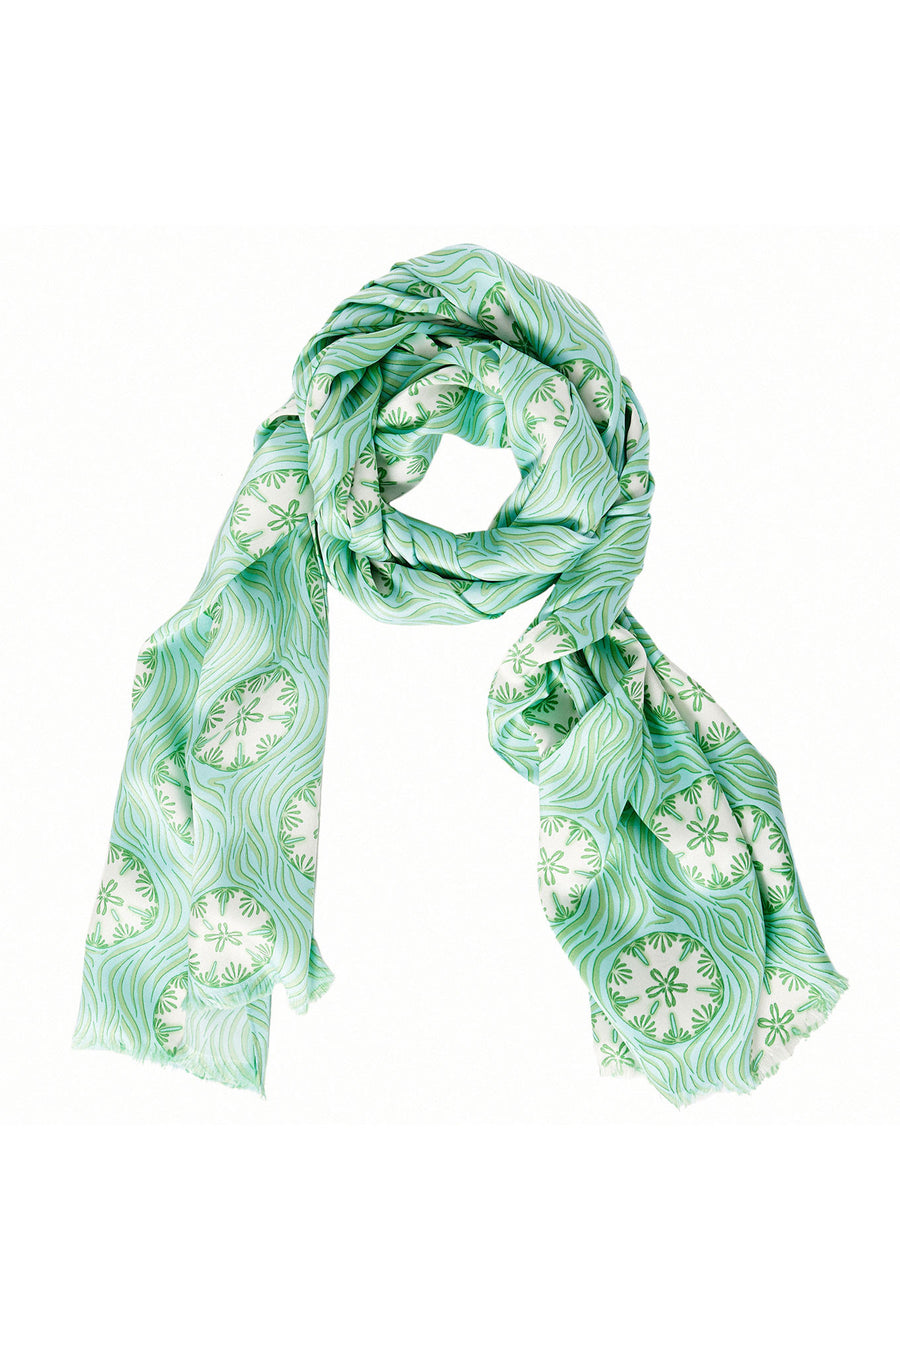 Lotty B Silk Charmeuse Long Scarf (Sand Dollar Repeat Green) Mustique life